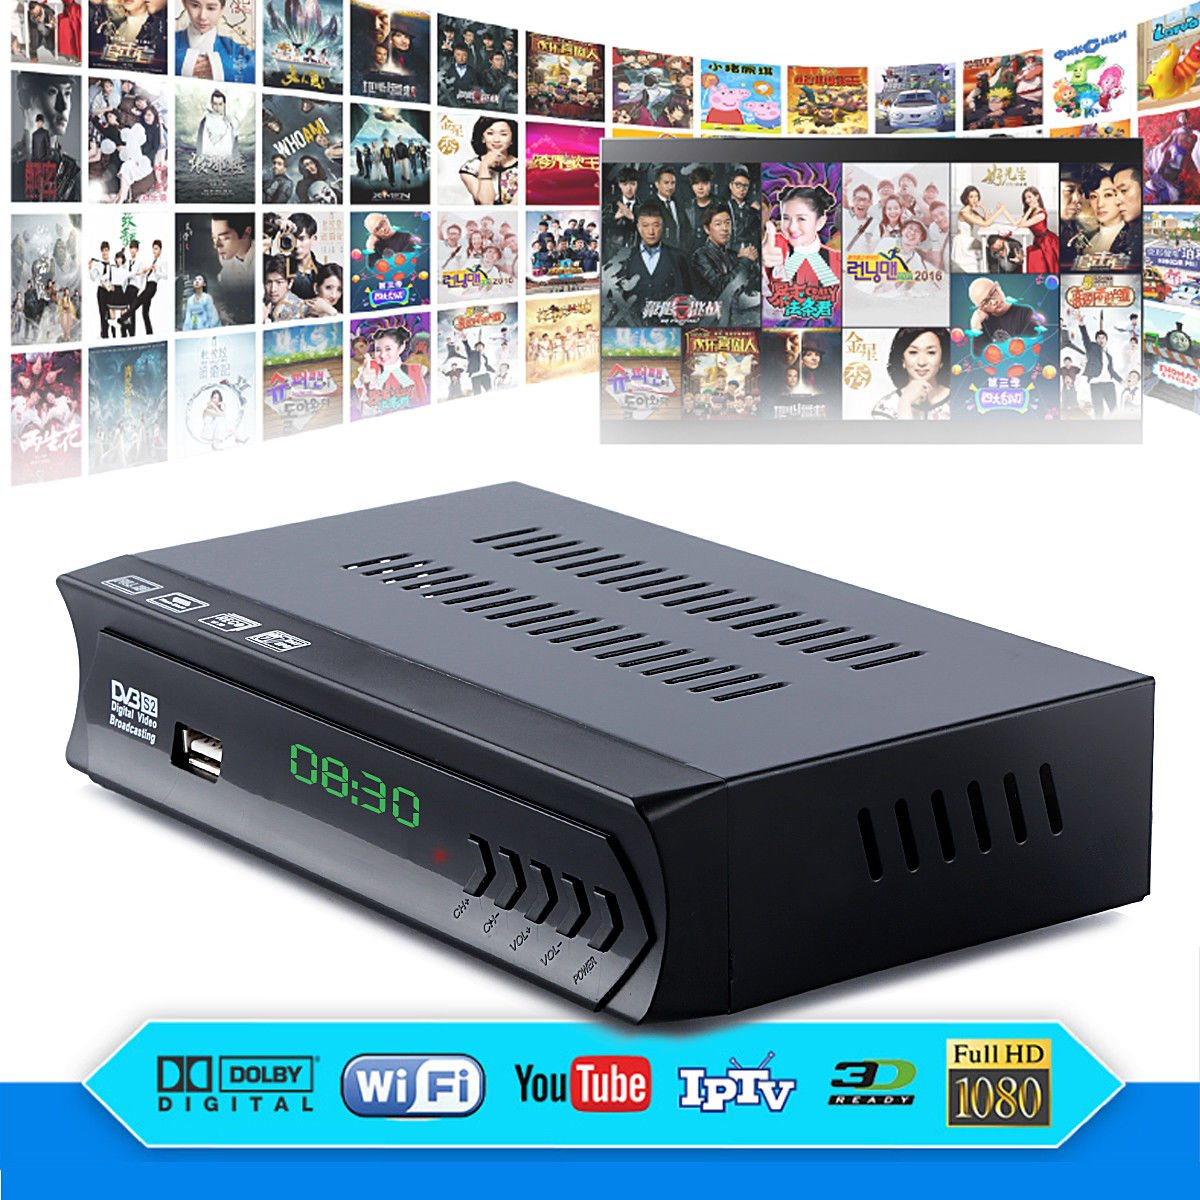 FidgetFidget DVB-S2 Digital Satellite + Wifi IPTV Combo AC3 Receiver Blind TV BOX IKS Youtube